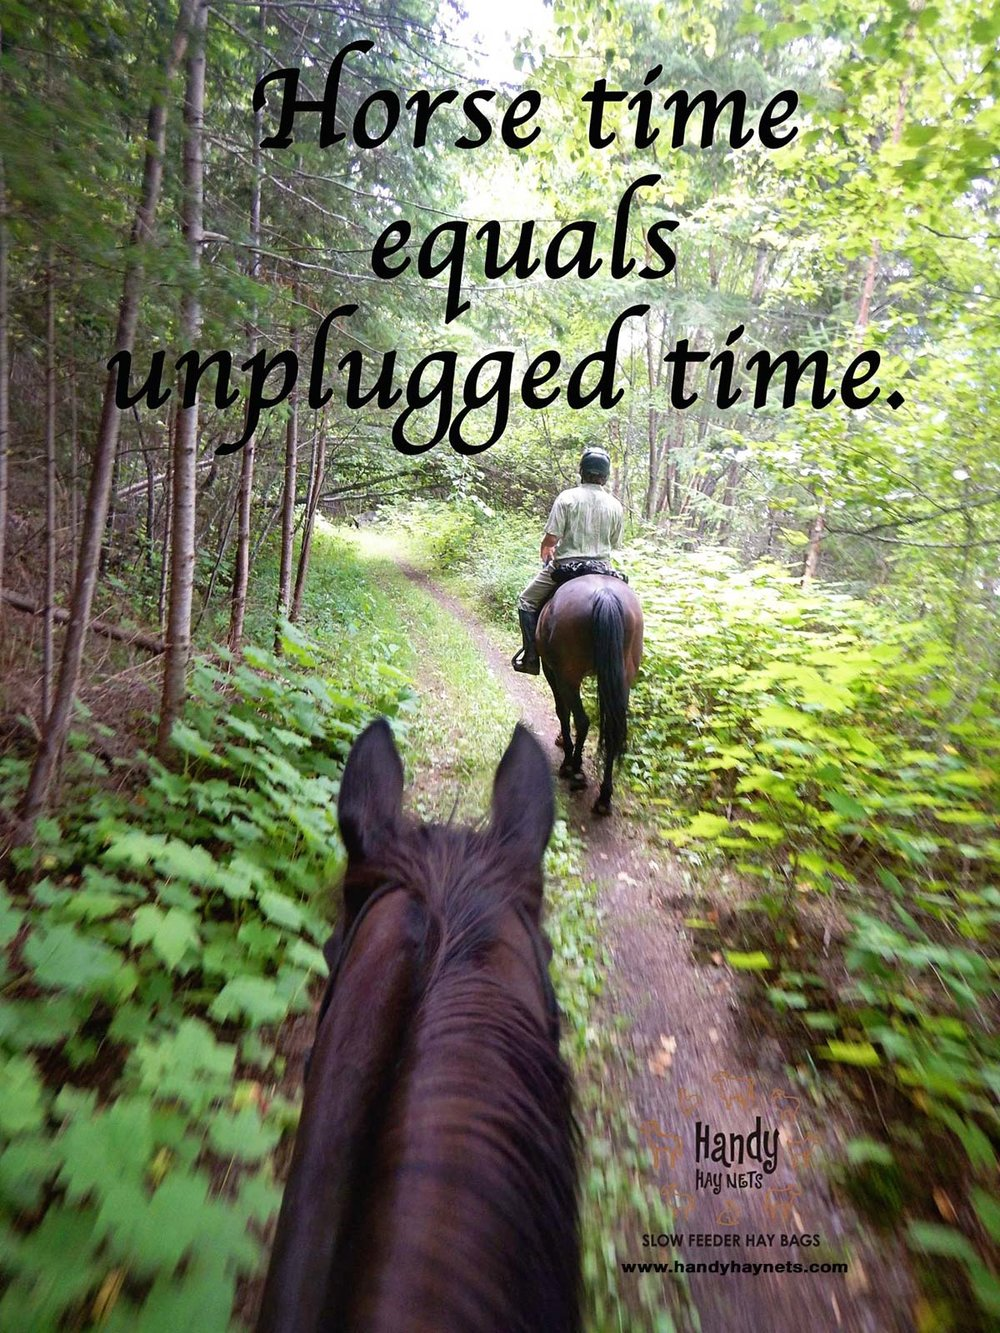 horse-time-equals-unplugged-time.jpg